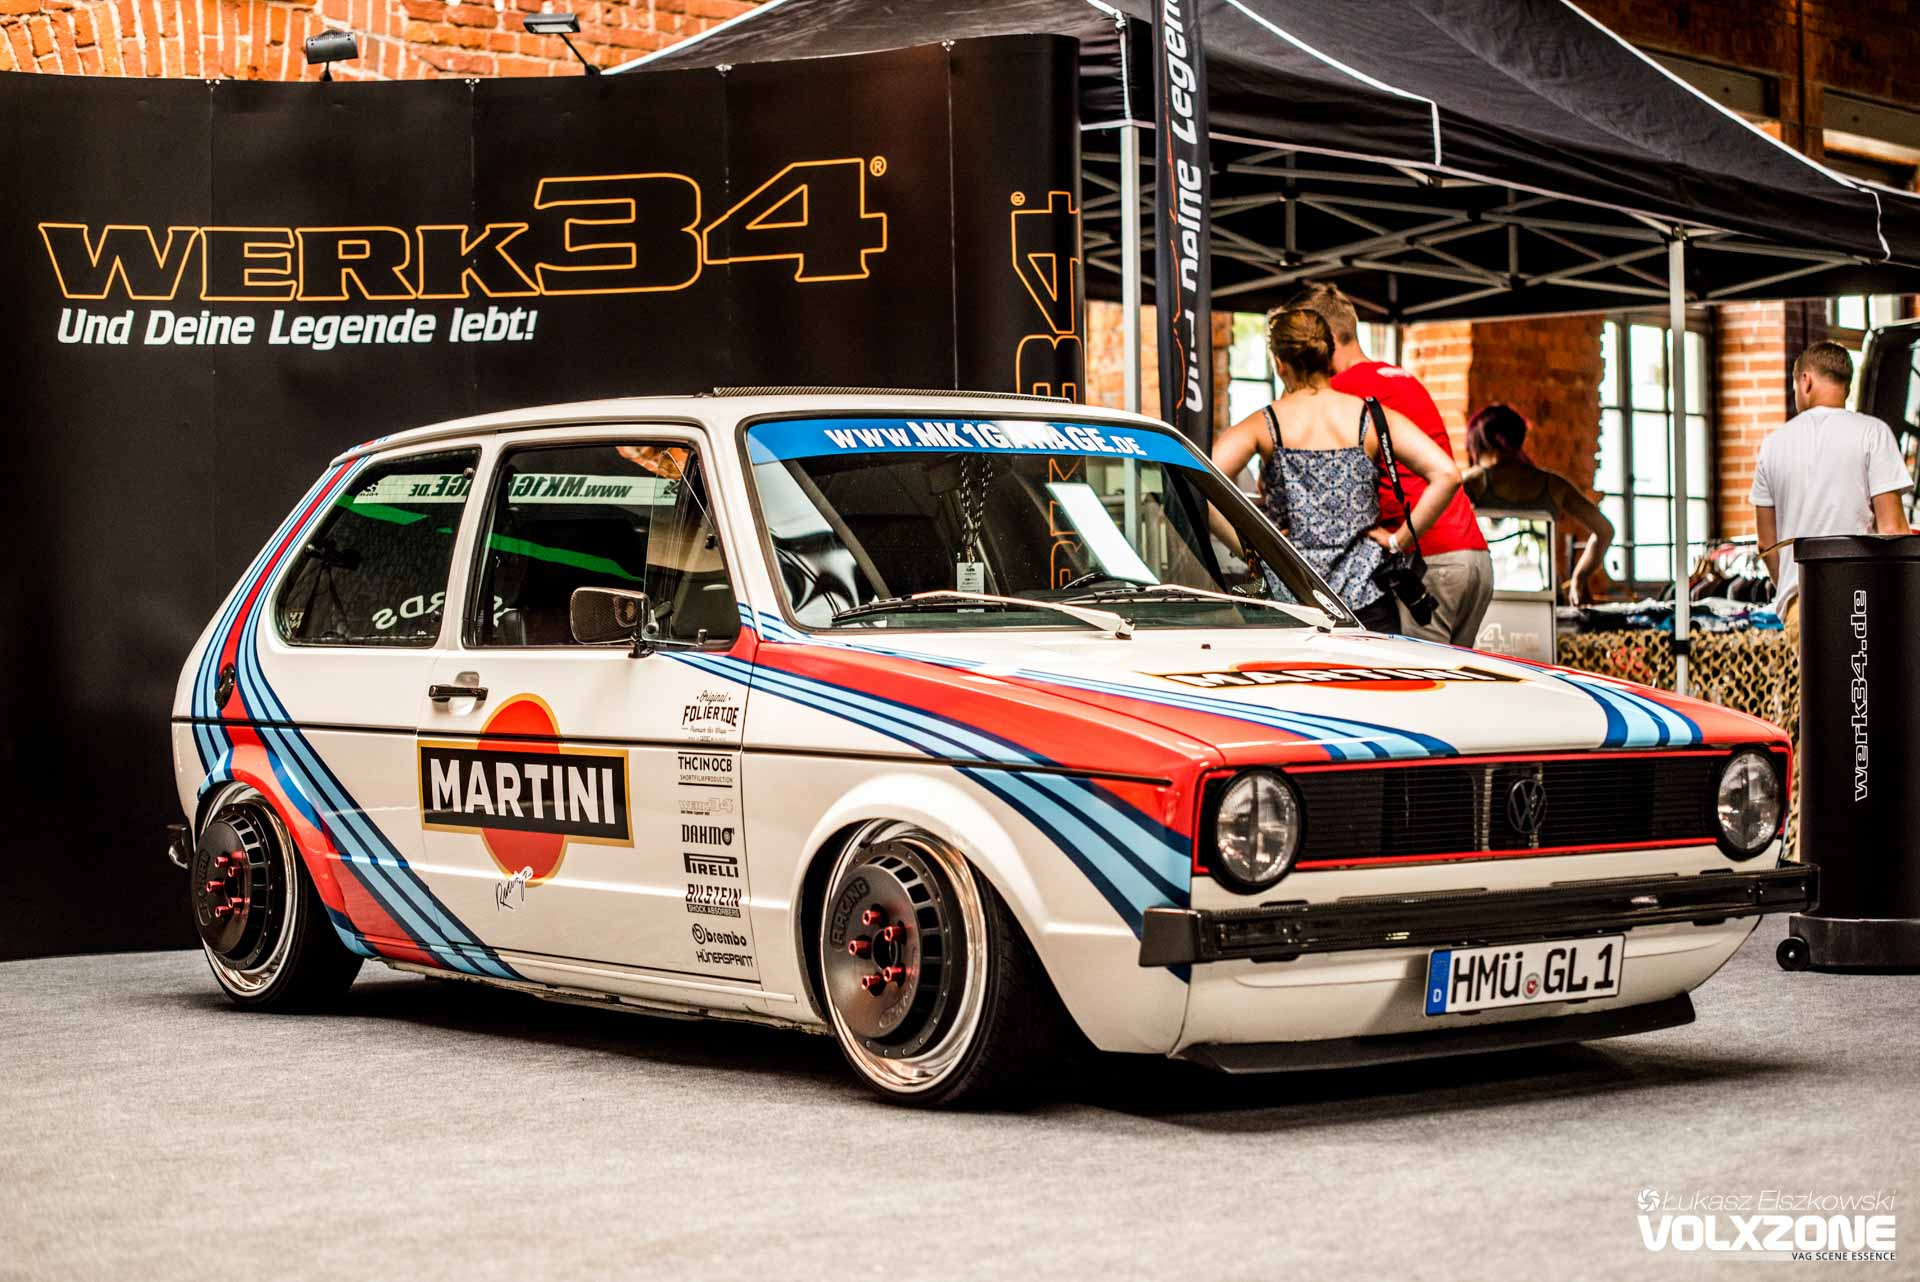 Vw golf mk1 garage werk34 martini volxzone for Garage volkswagen paris 15